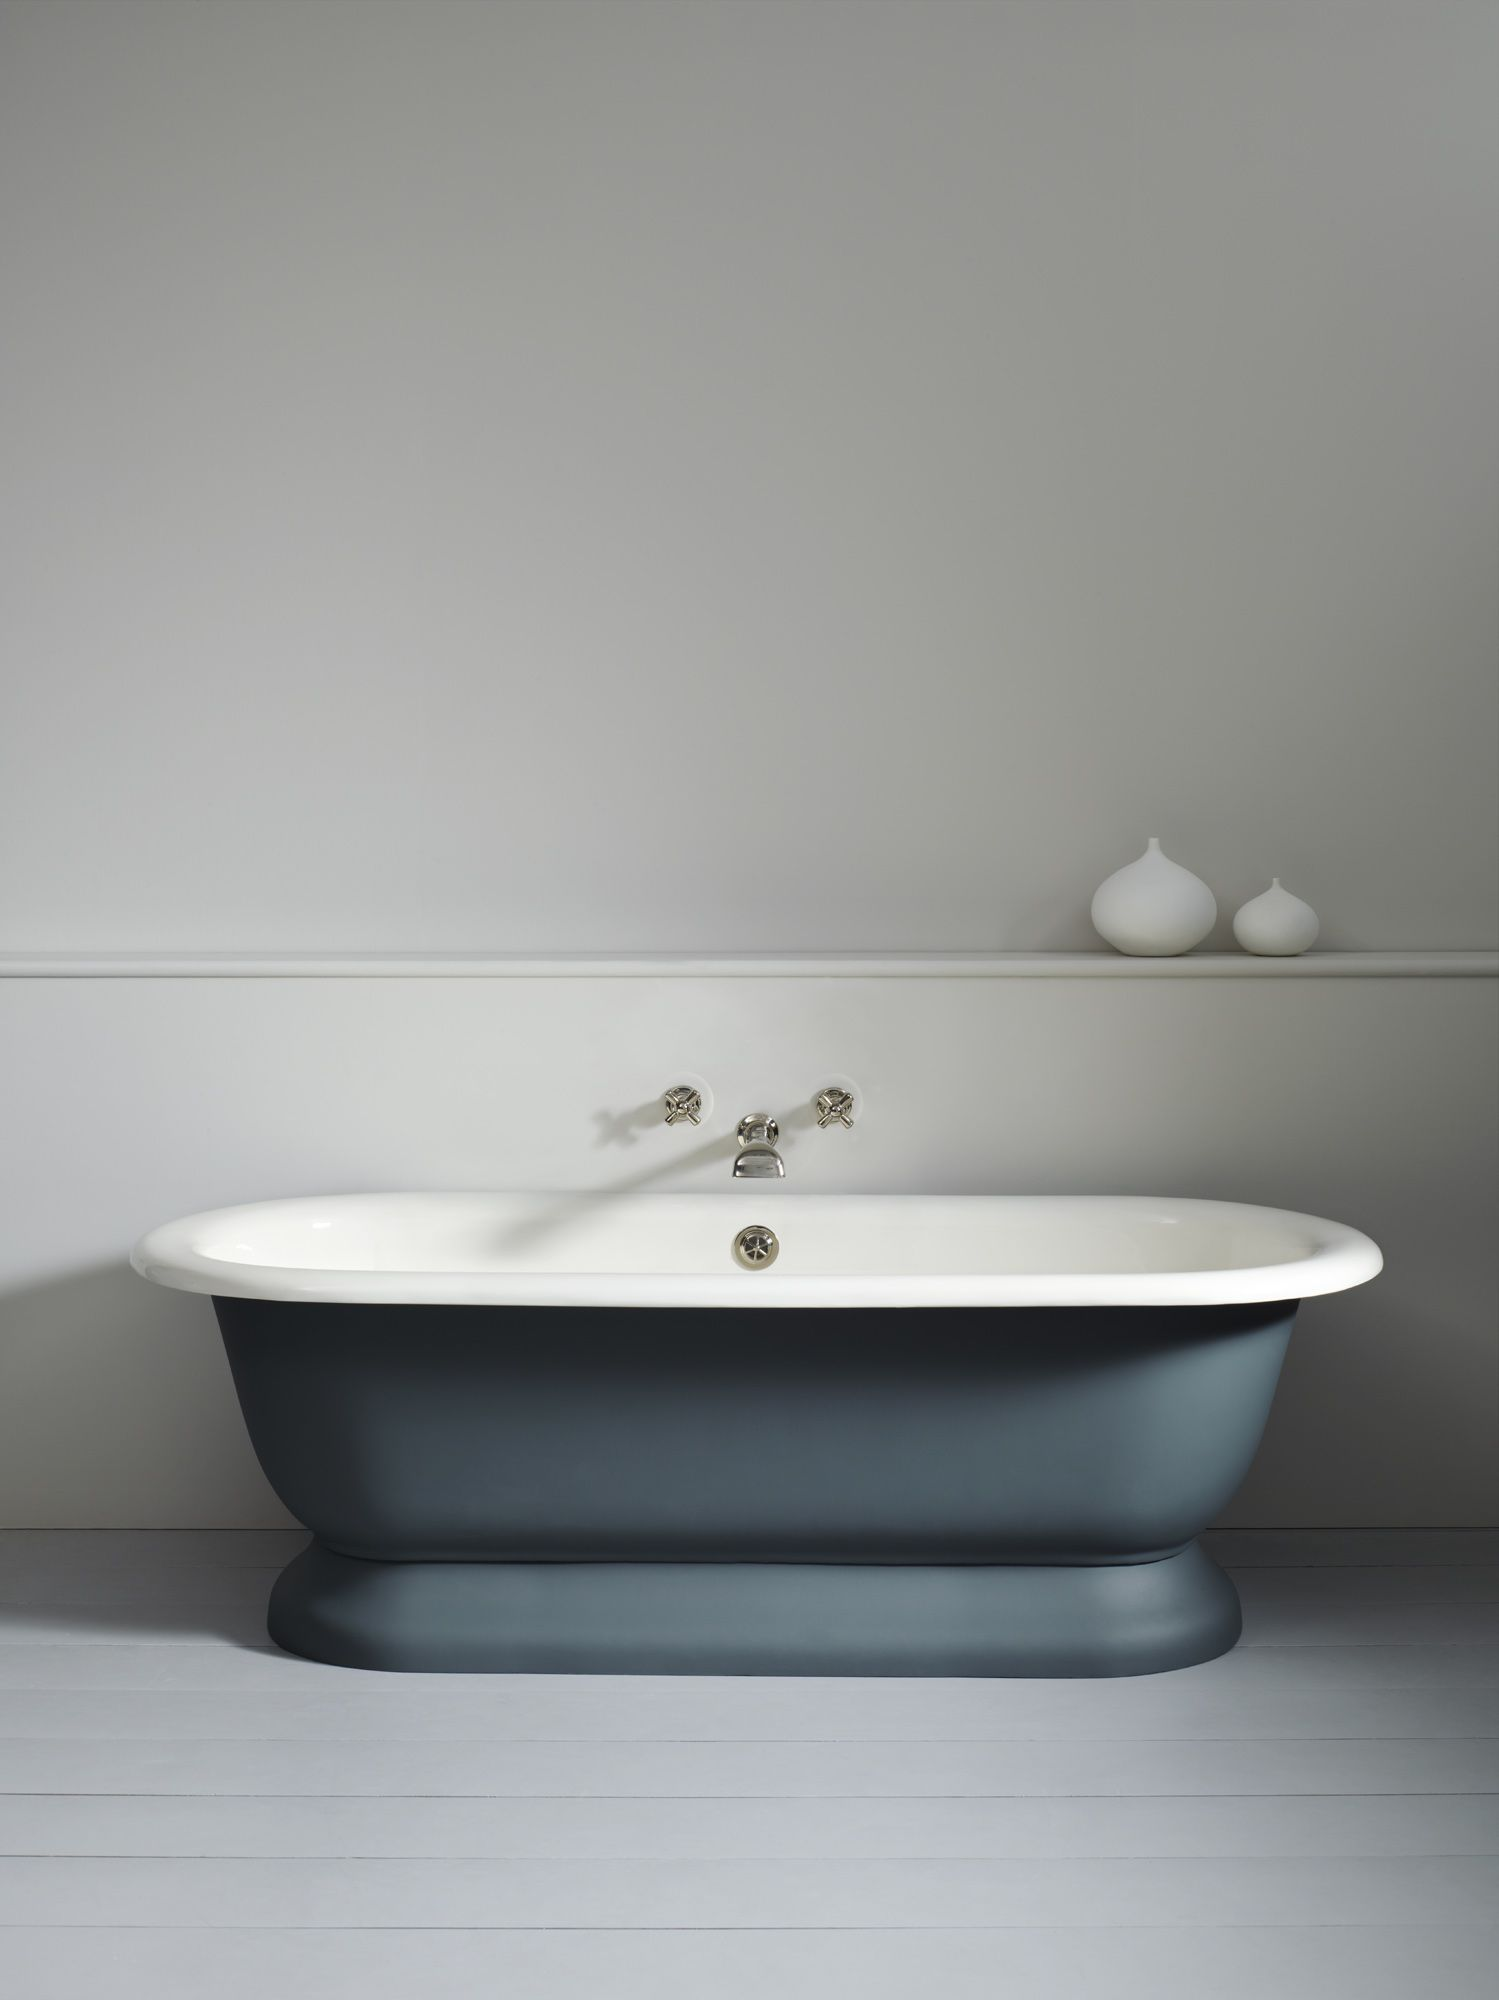 Lonsdale Bath with painted exterior - can be painted in any colour | I just love this matte green colour